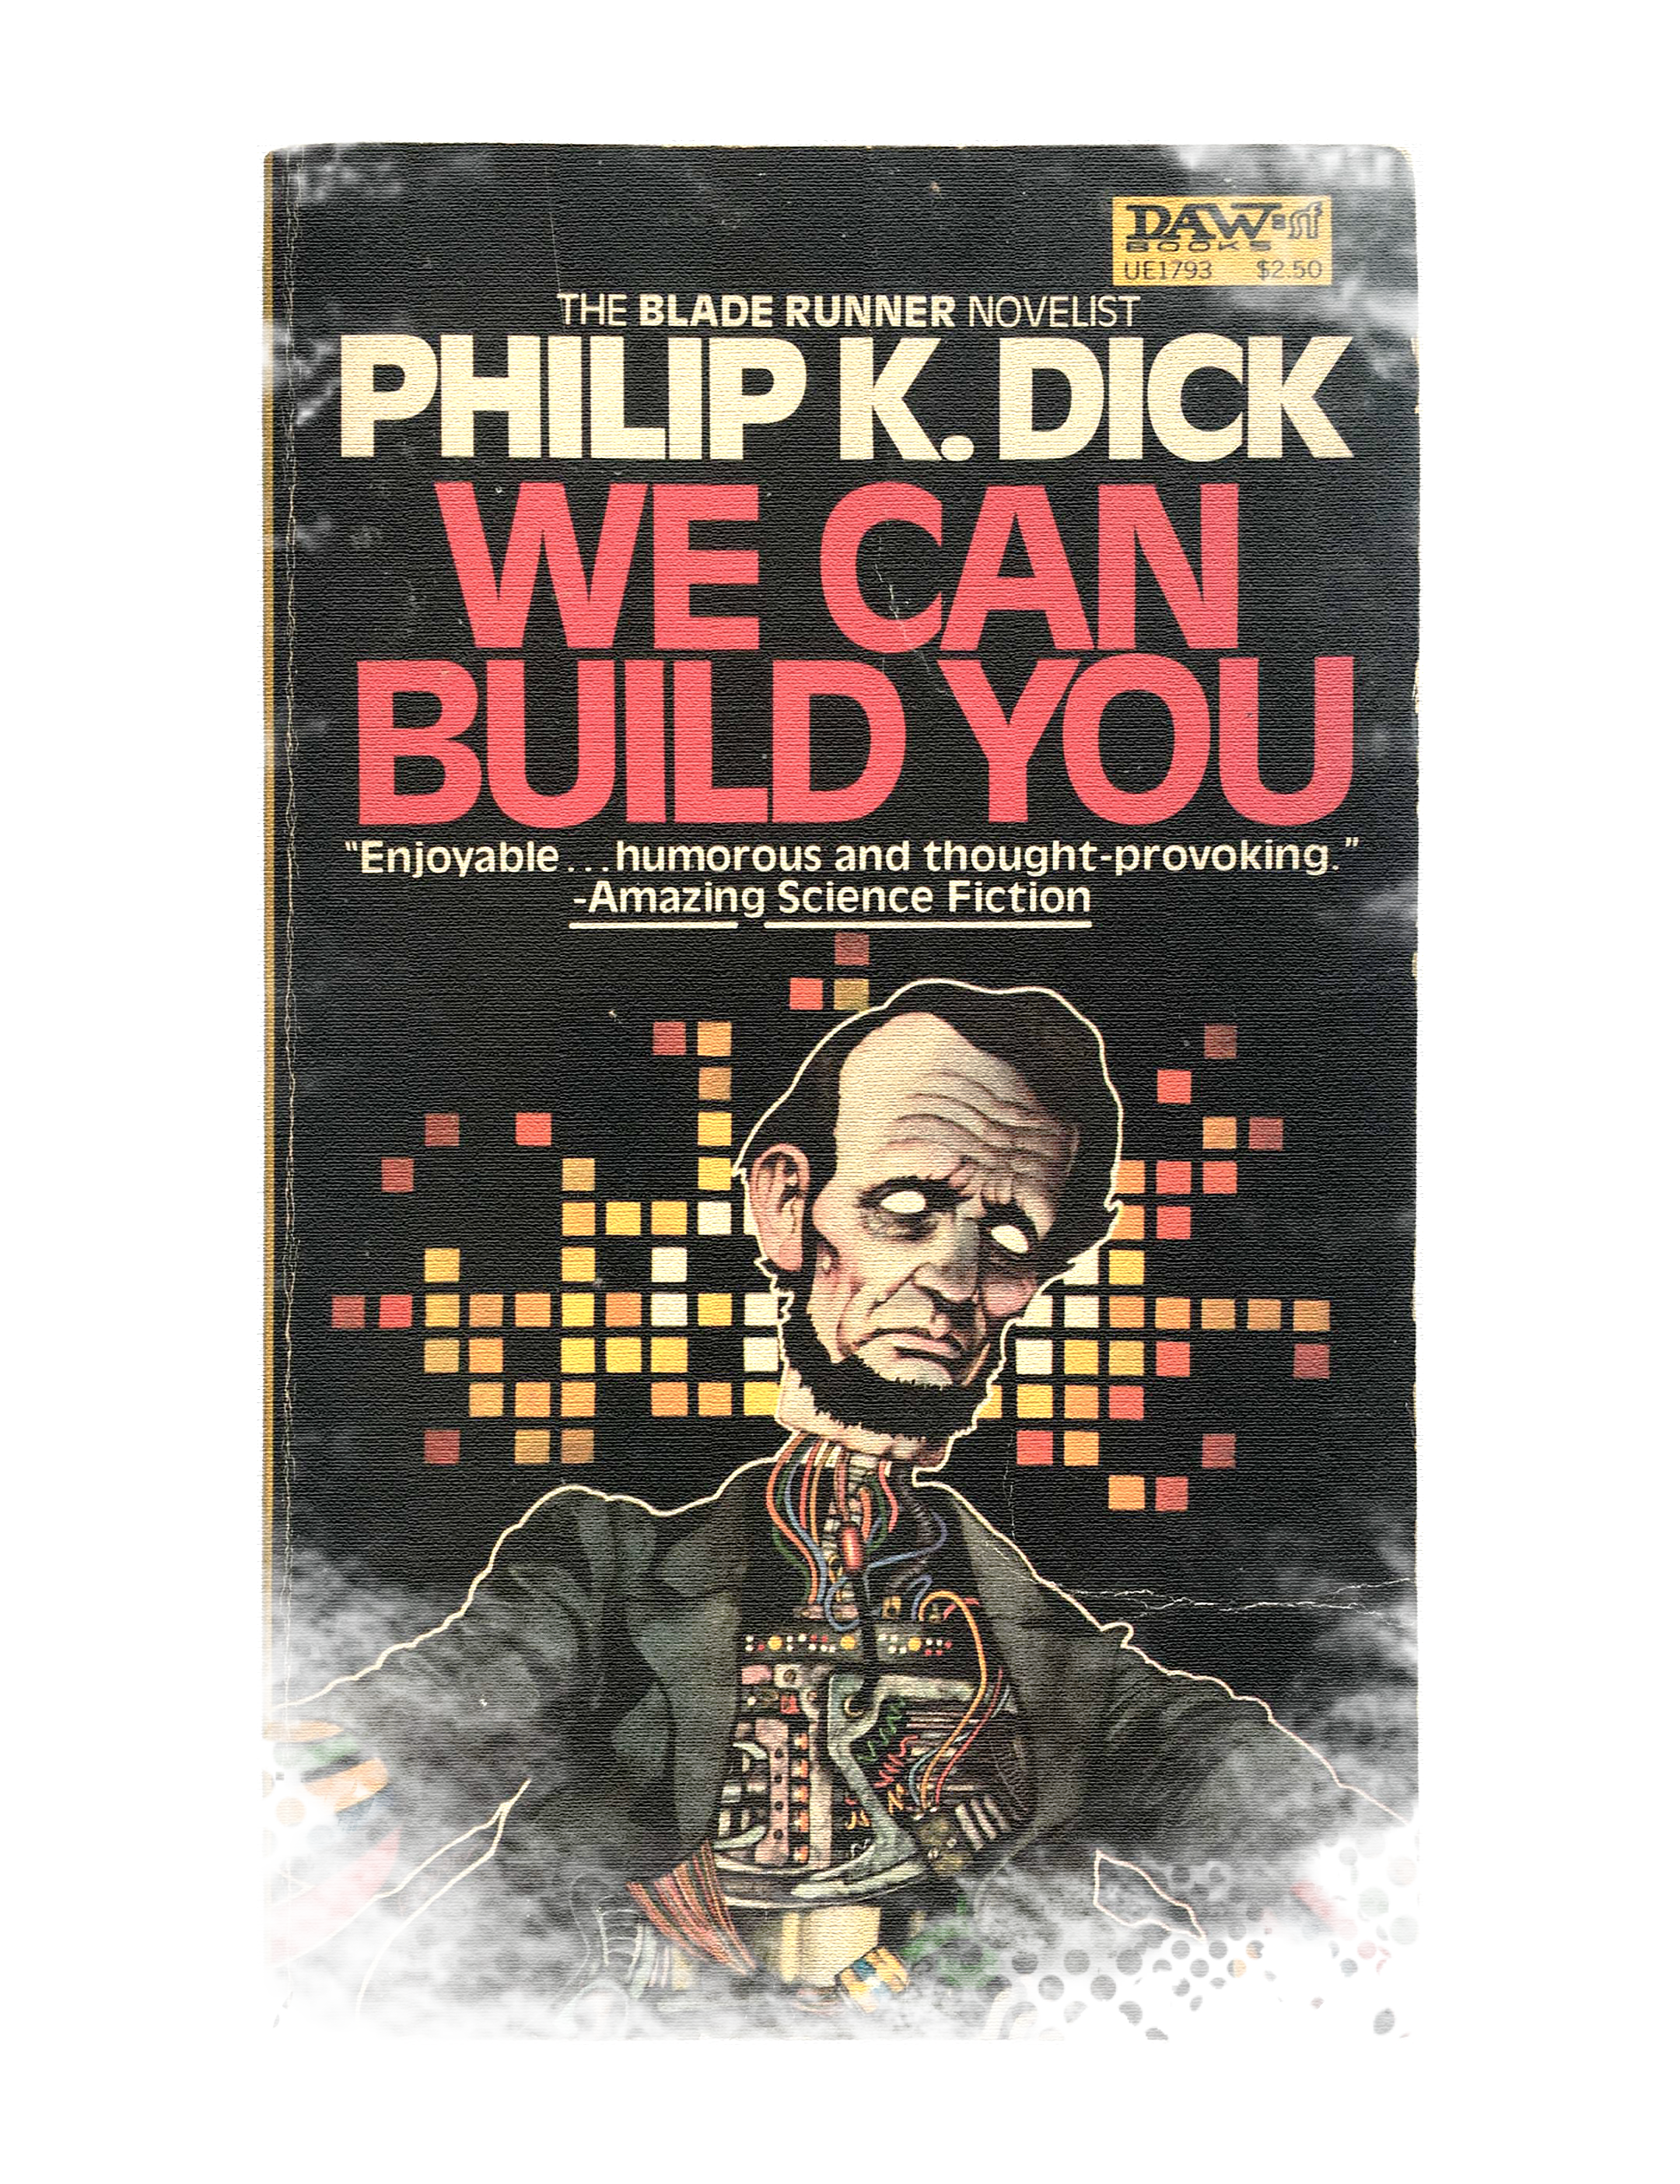 Philip K. Dick,  We Can Build You , 1983, New York City, NY: DAW Books. Cover Design by: John Schoenherr